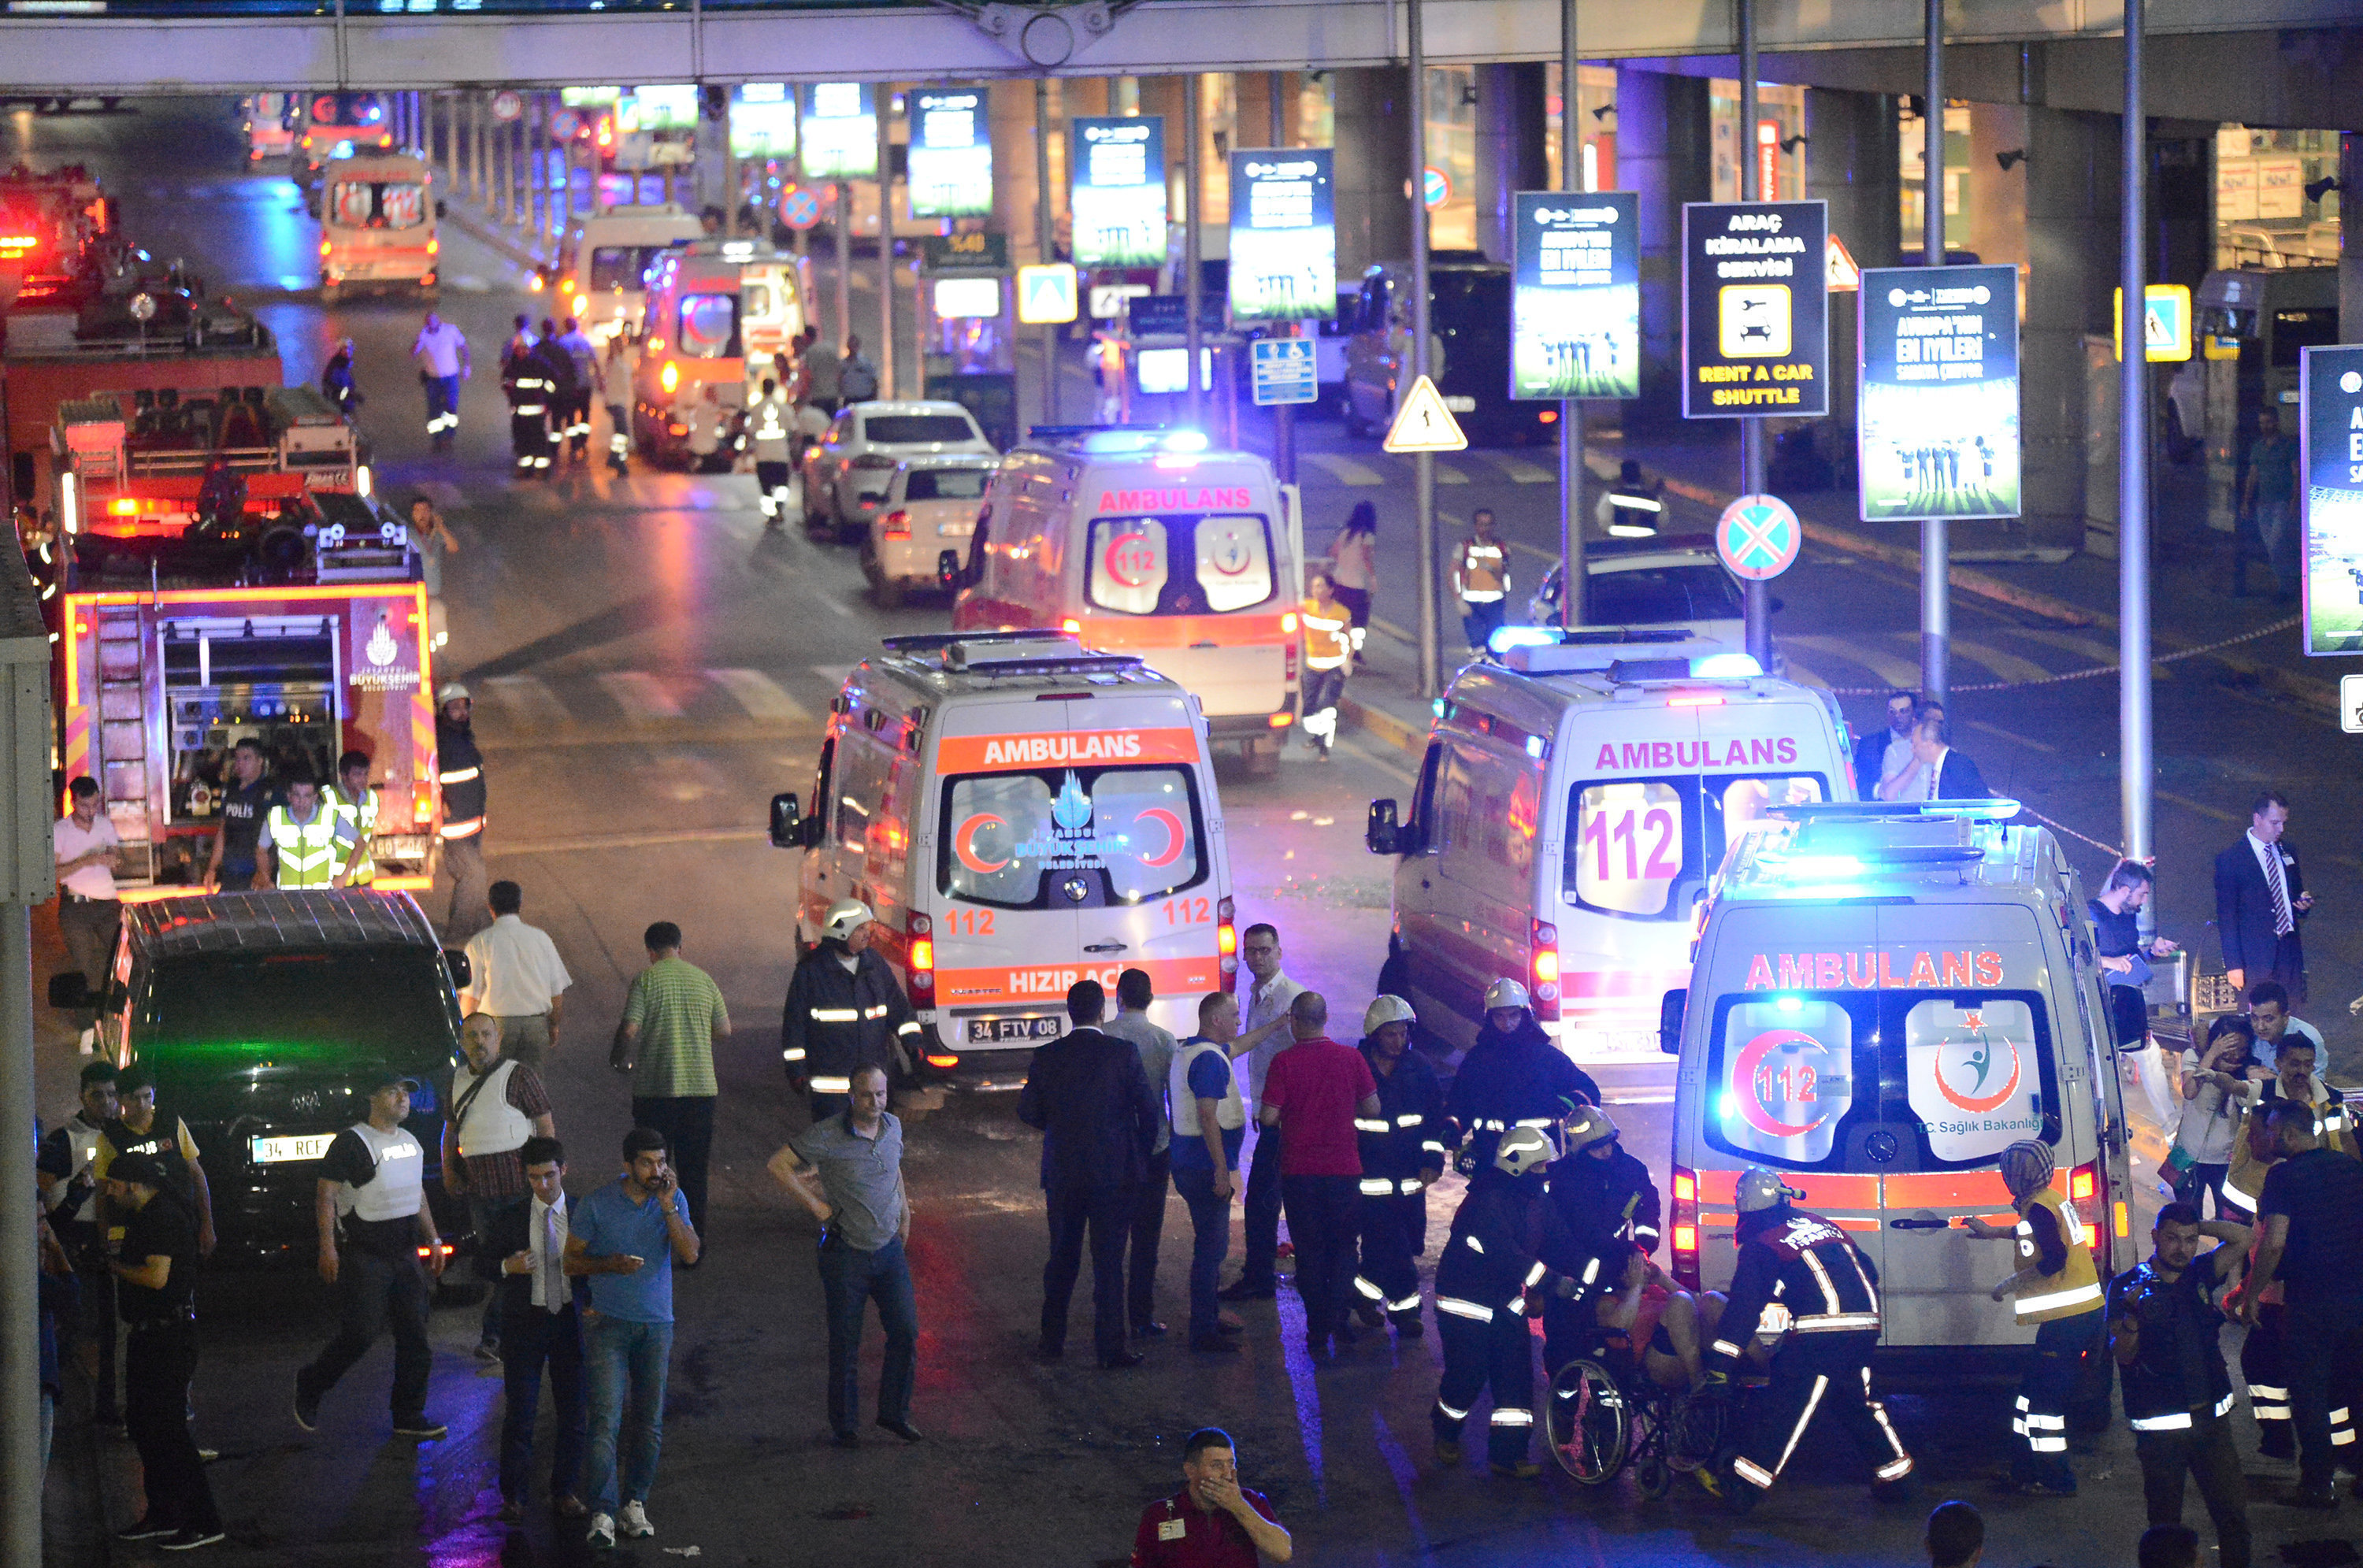 Paramedics help casualties outside Turkey's largest airport, Istanbul Ataturk, Turkey, following a gun and bomb attack allegedly perpetrated by the Daesh terrorist group, June 28, 2016.